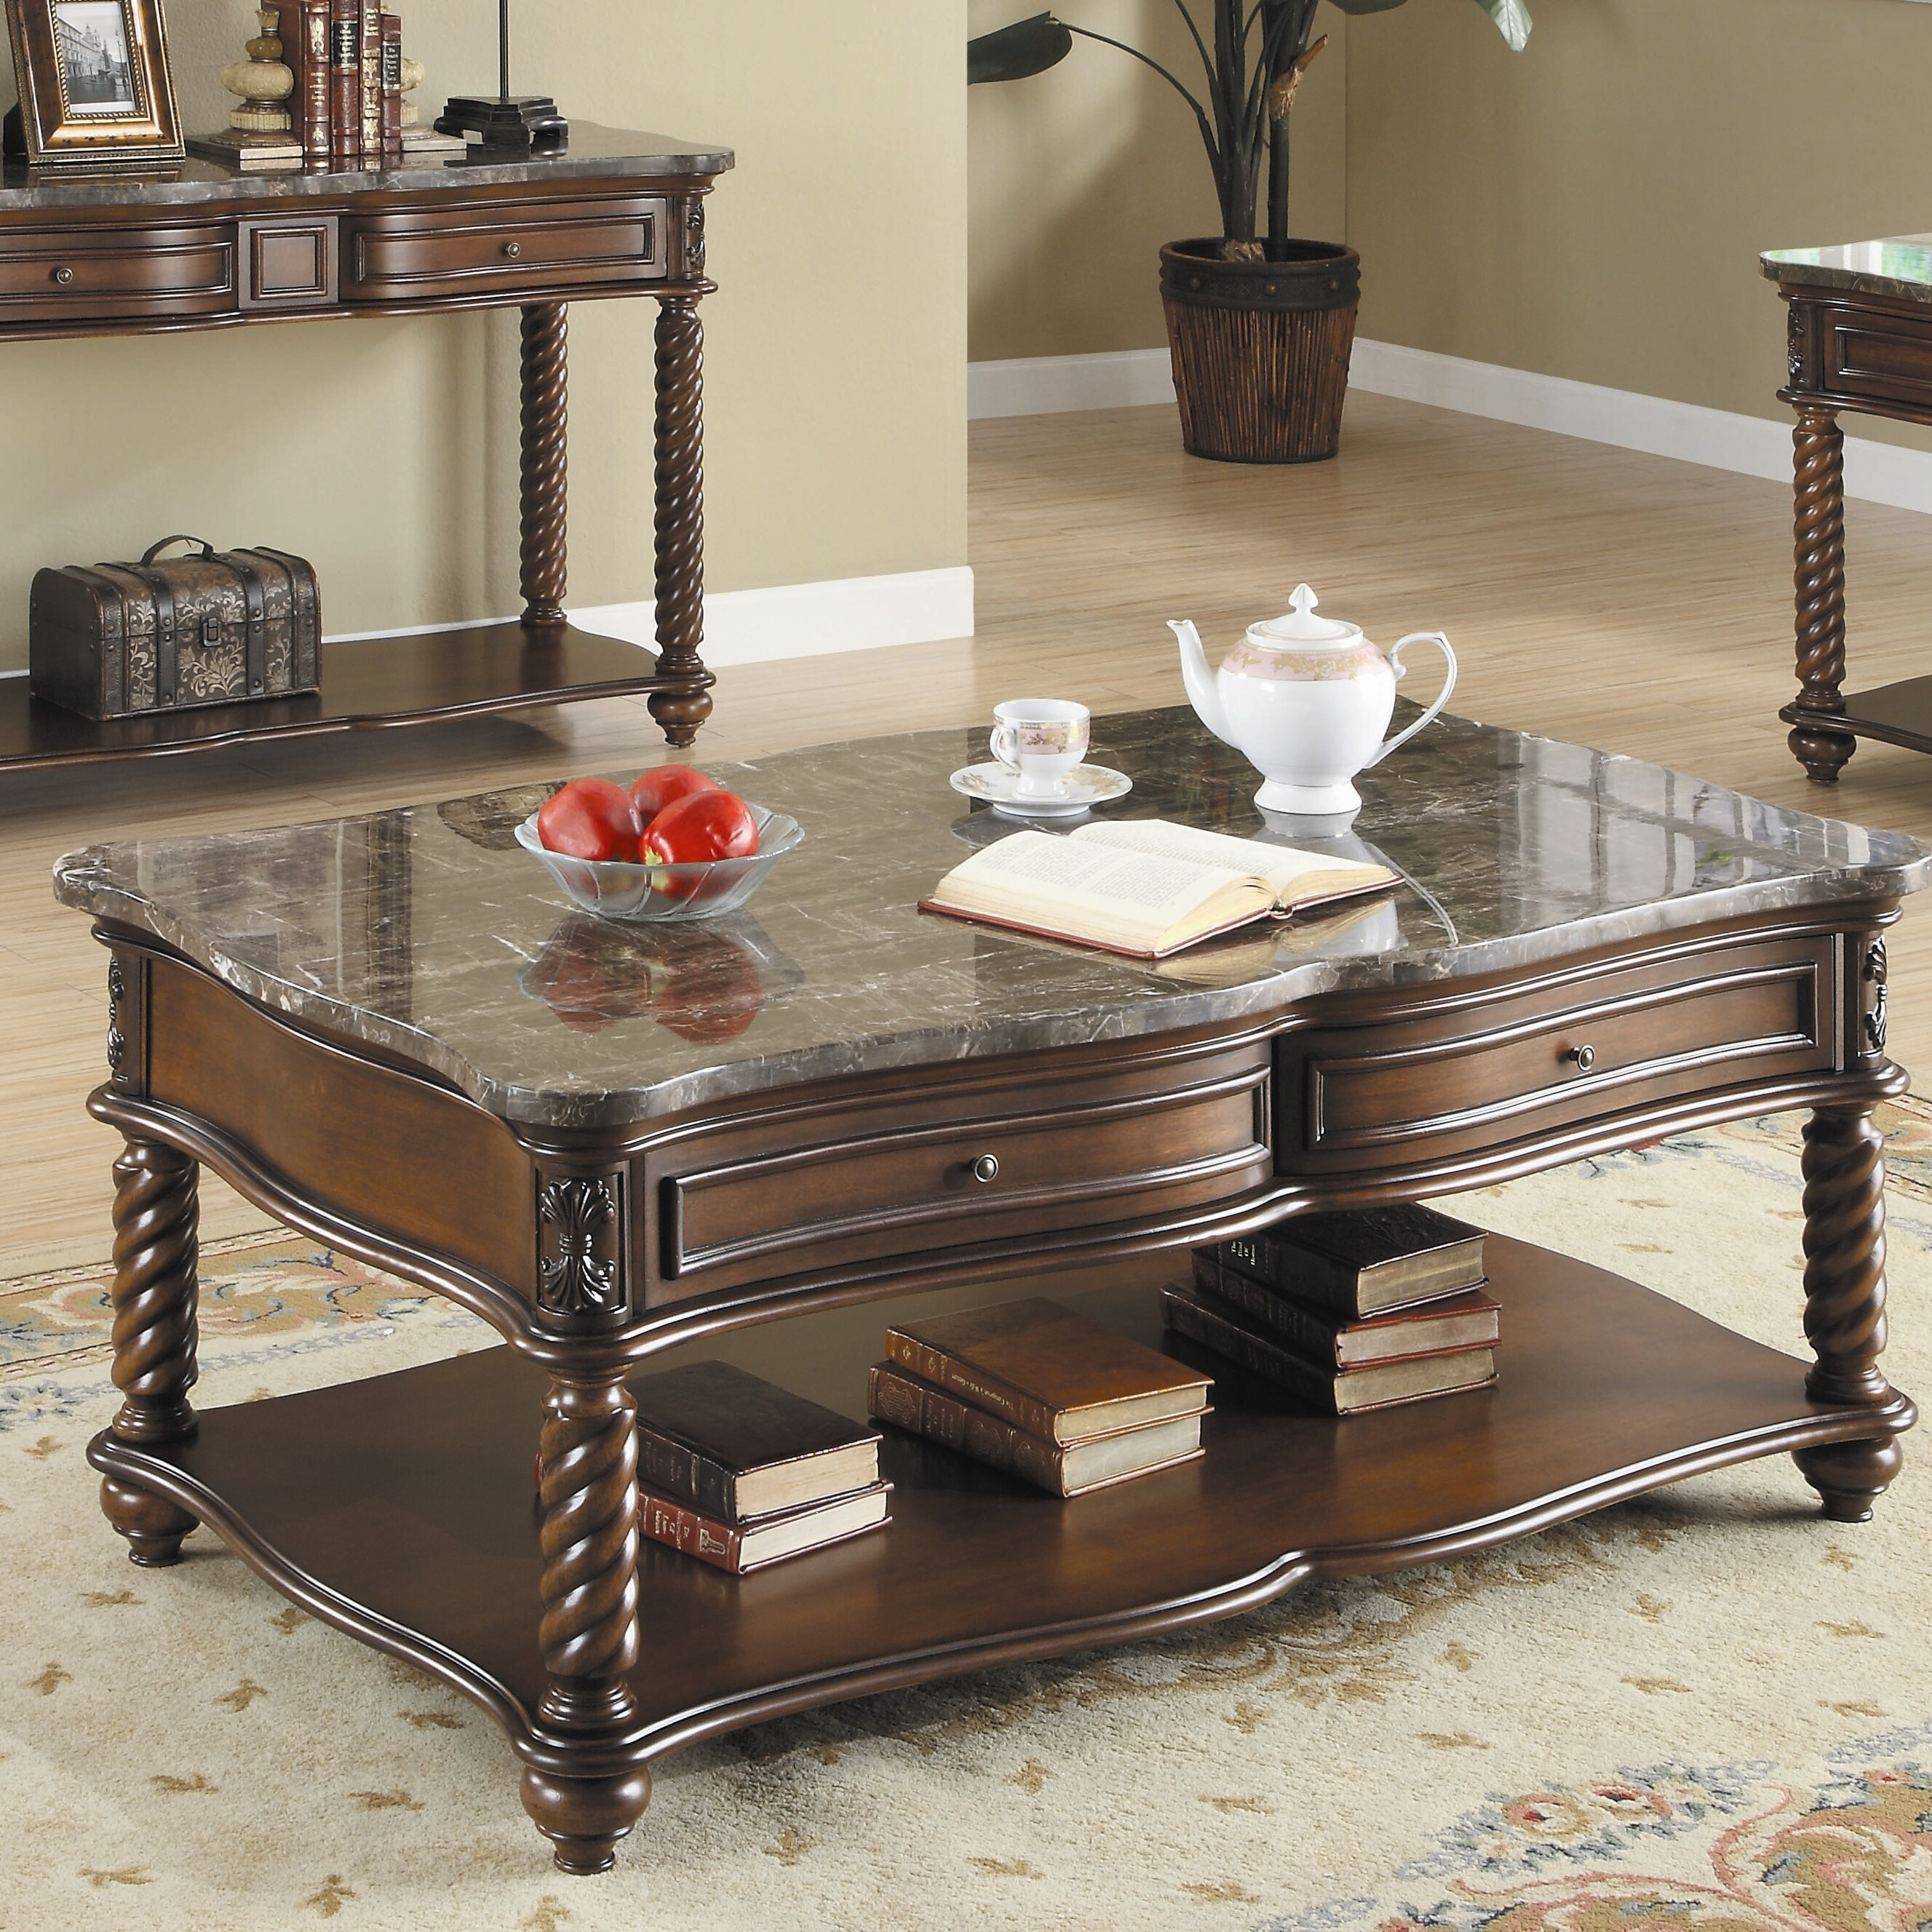 Woodhaven hill lockwood coffee table reviews wayfair - Woodbridge home designs avalon coffee table ...